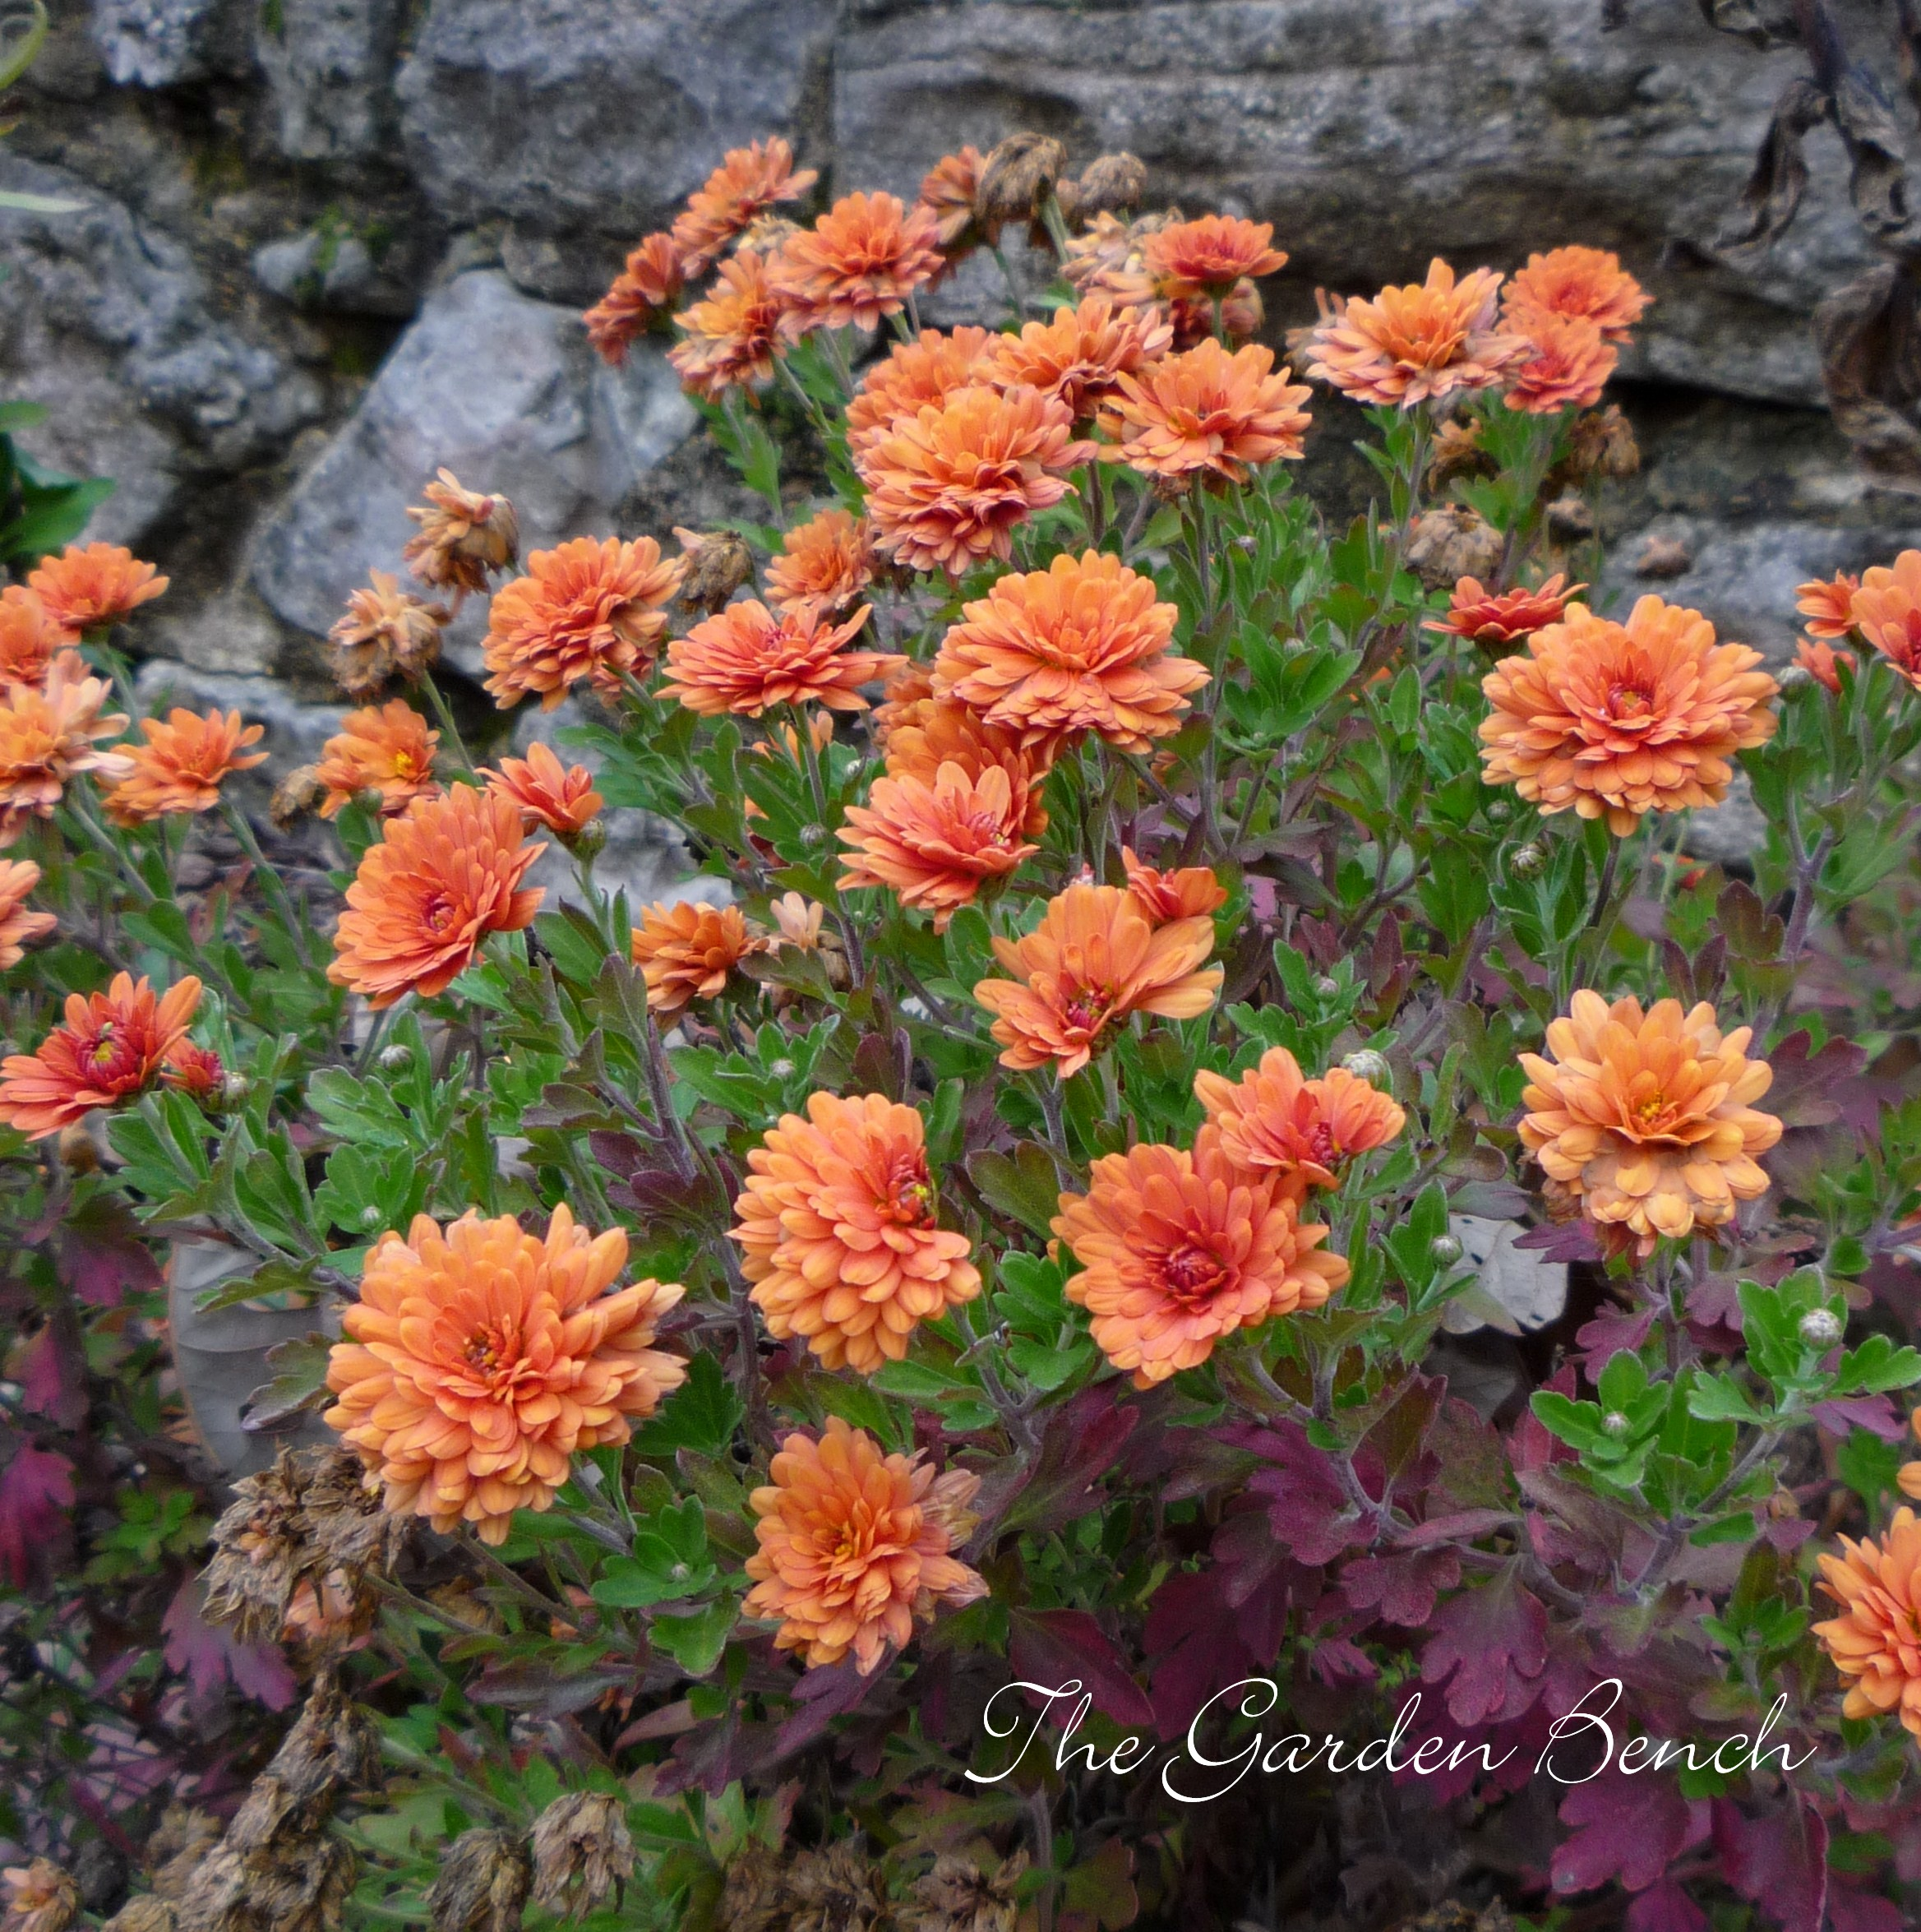 Fall gardening the garden bench different sources say different things about what to do with mums after they are browned by frost one source advises to cut them back in the spring izmirmasajfo